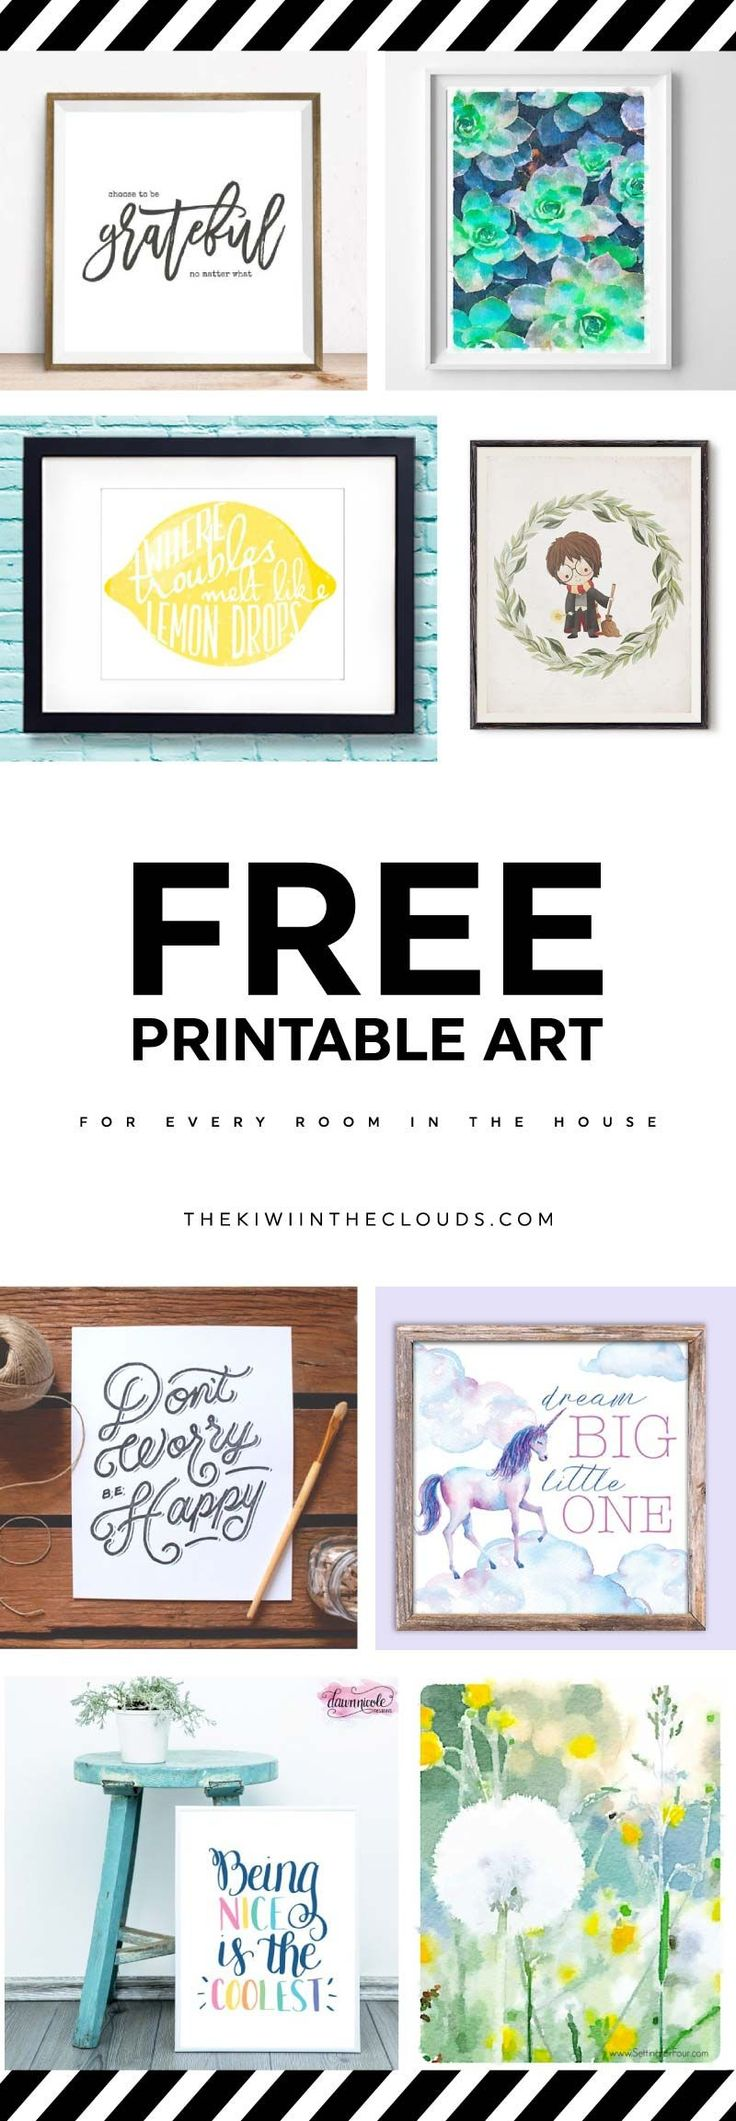 Decorate every blank wall in your home with these free printable art prints. There are inspirational prints, watercolor prints and more!